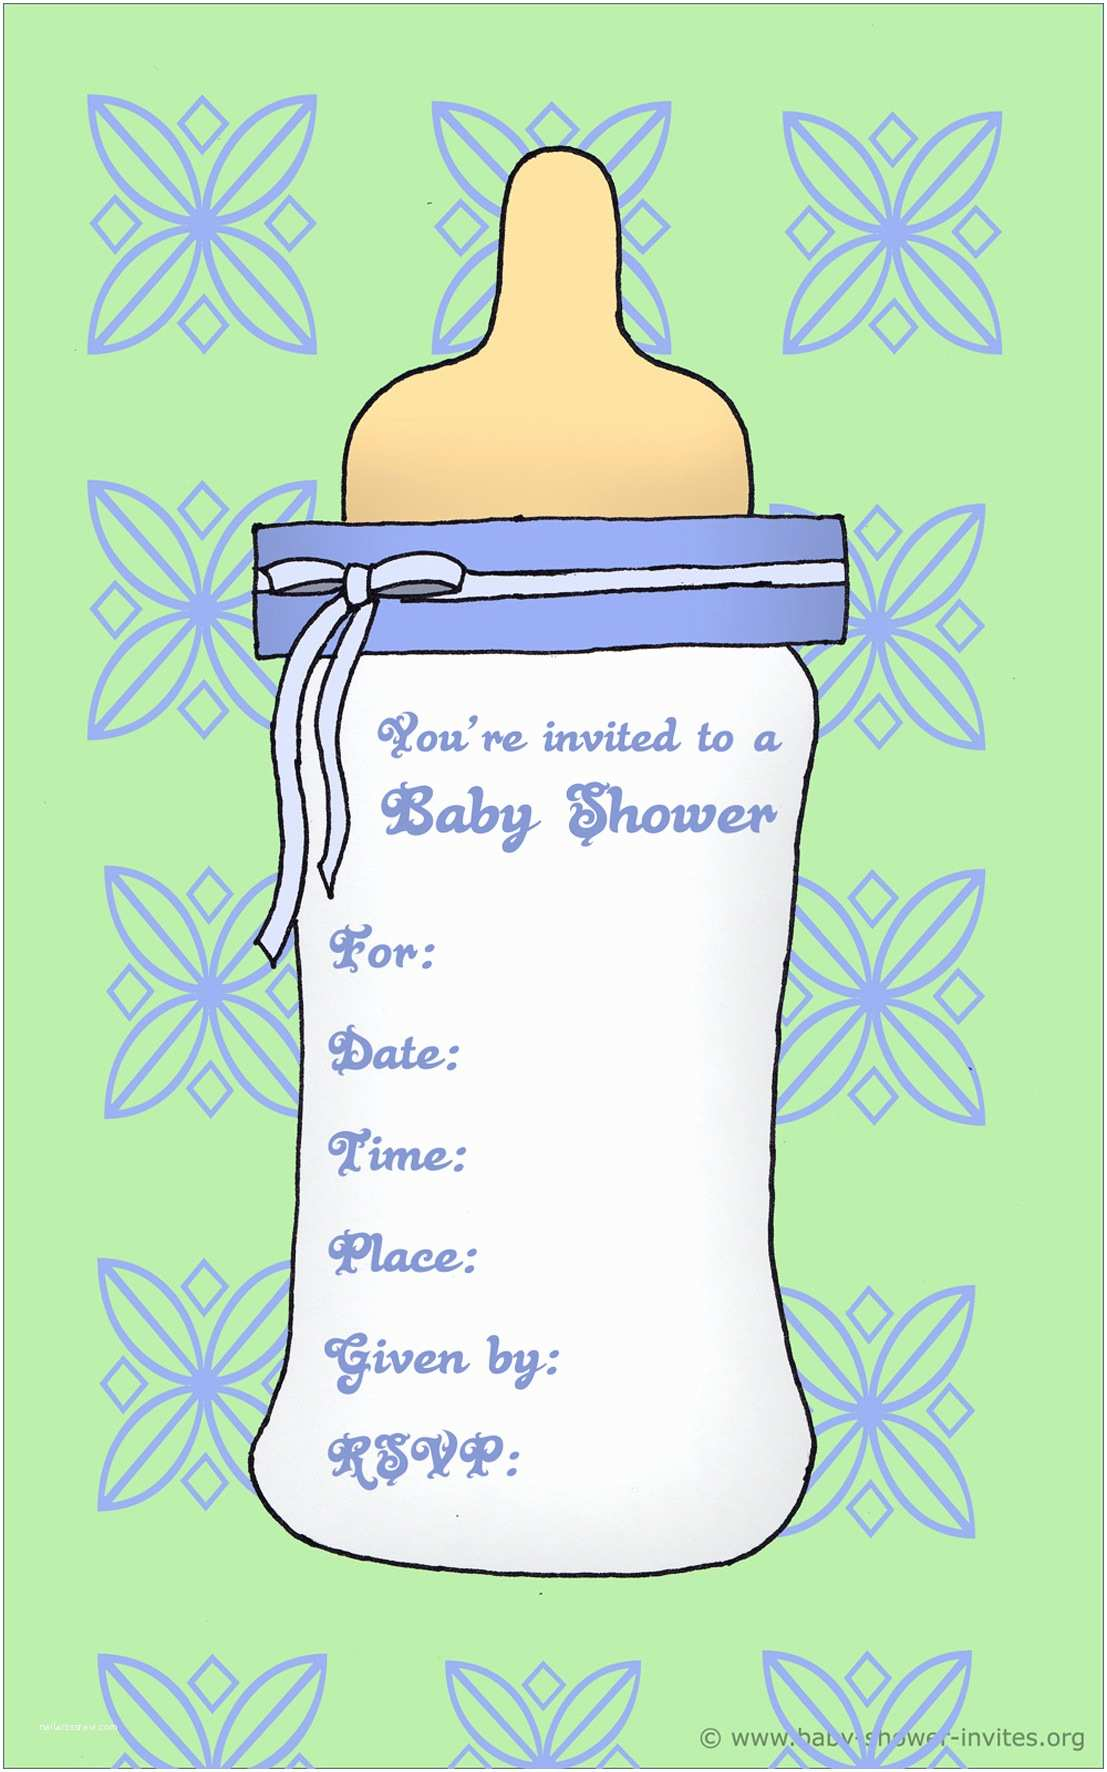 photograph relating to Printable Baby Boy Shower Invitations called Boy or girl Shower Invites for Boy 20 Printable Kid Shower